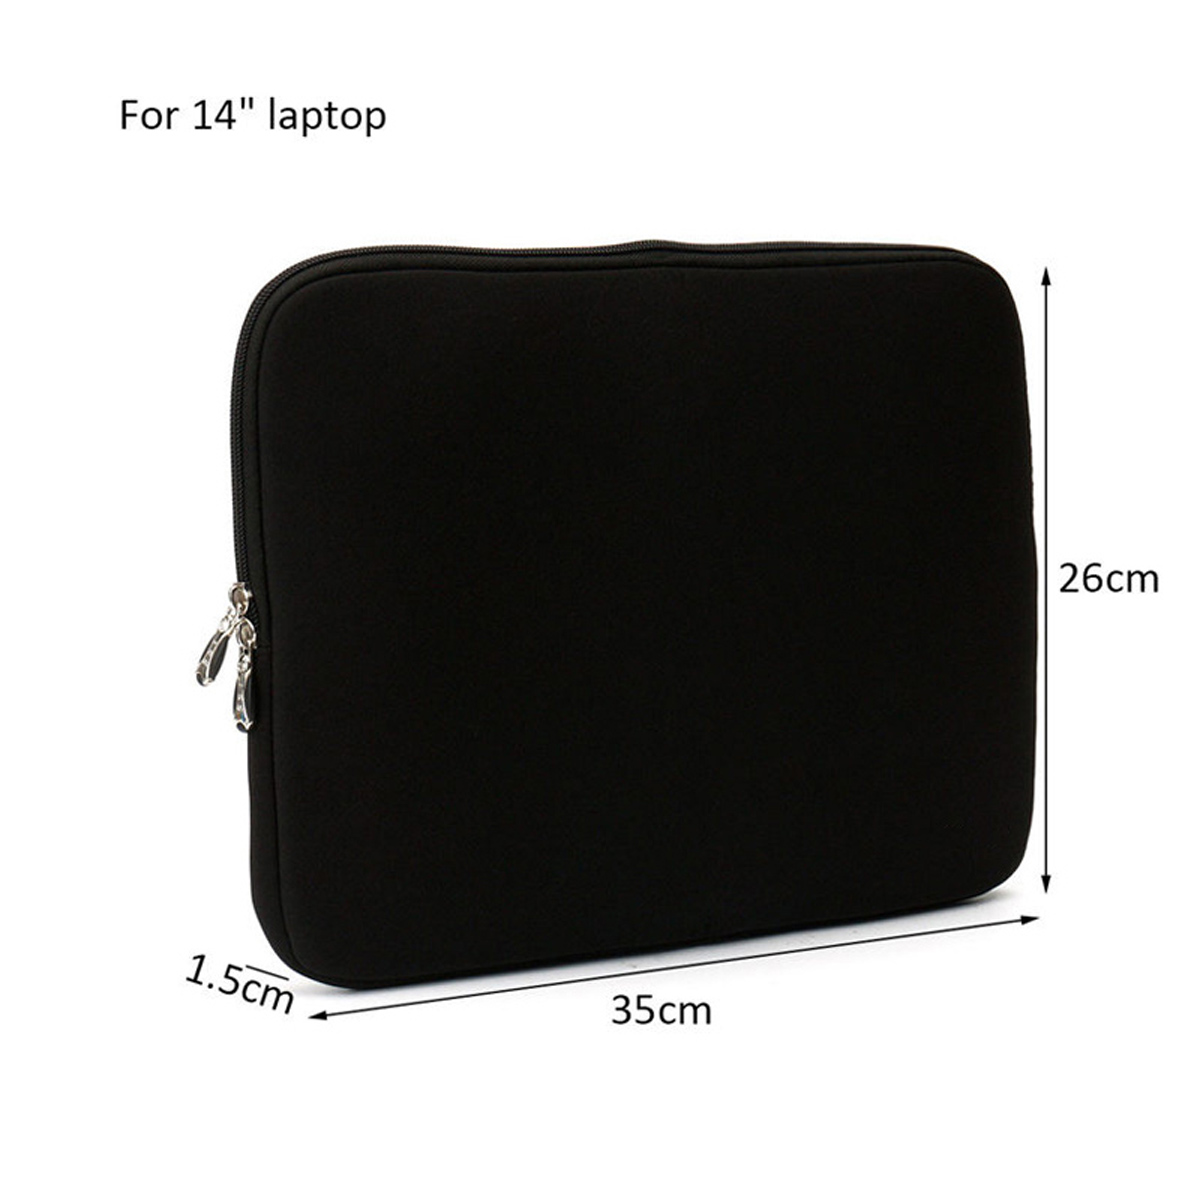 14 Inch LEORY Sleeve Bag Laptop Bag Tablet Bag For Laptop Tablet Under 14 Inch iPad Pro 12.9 Inch Macbook Air 13.3 Inch